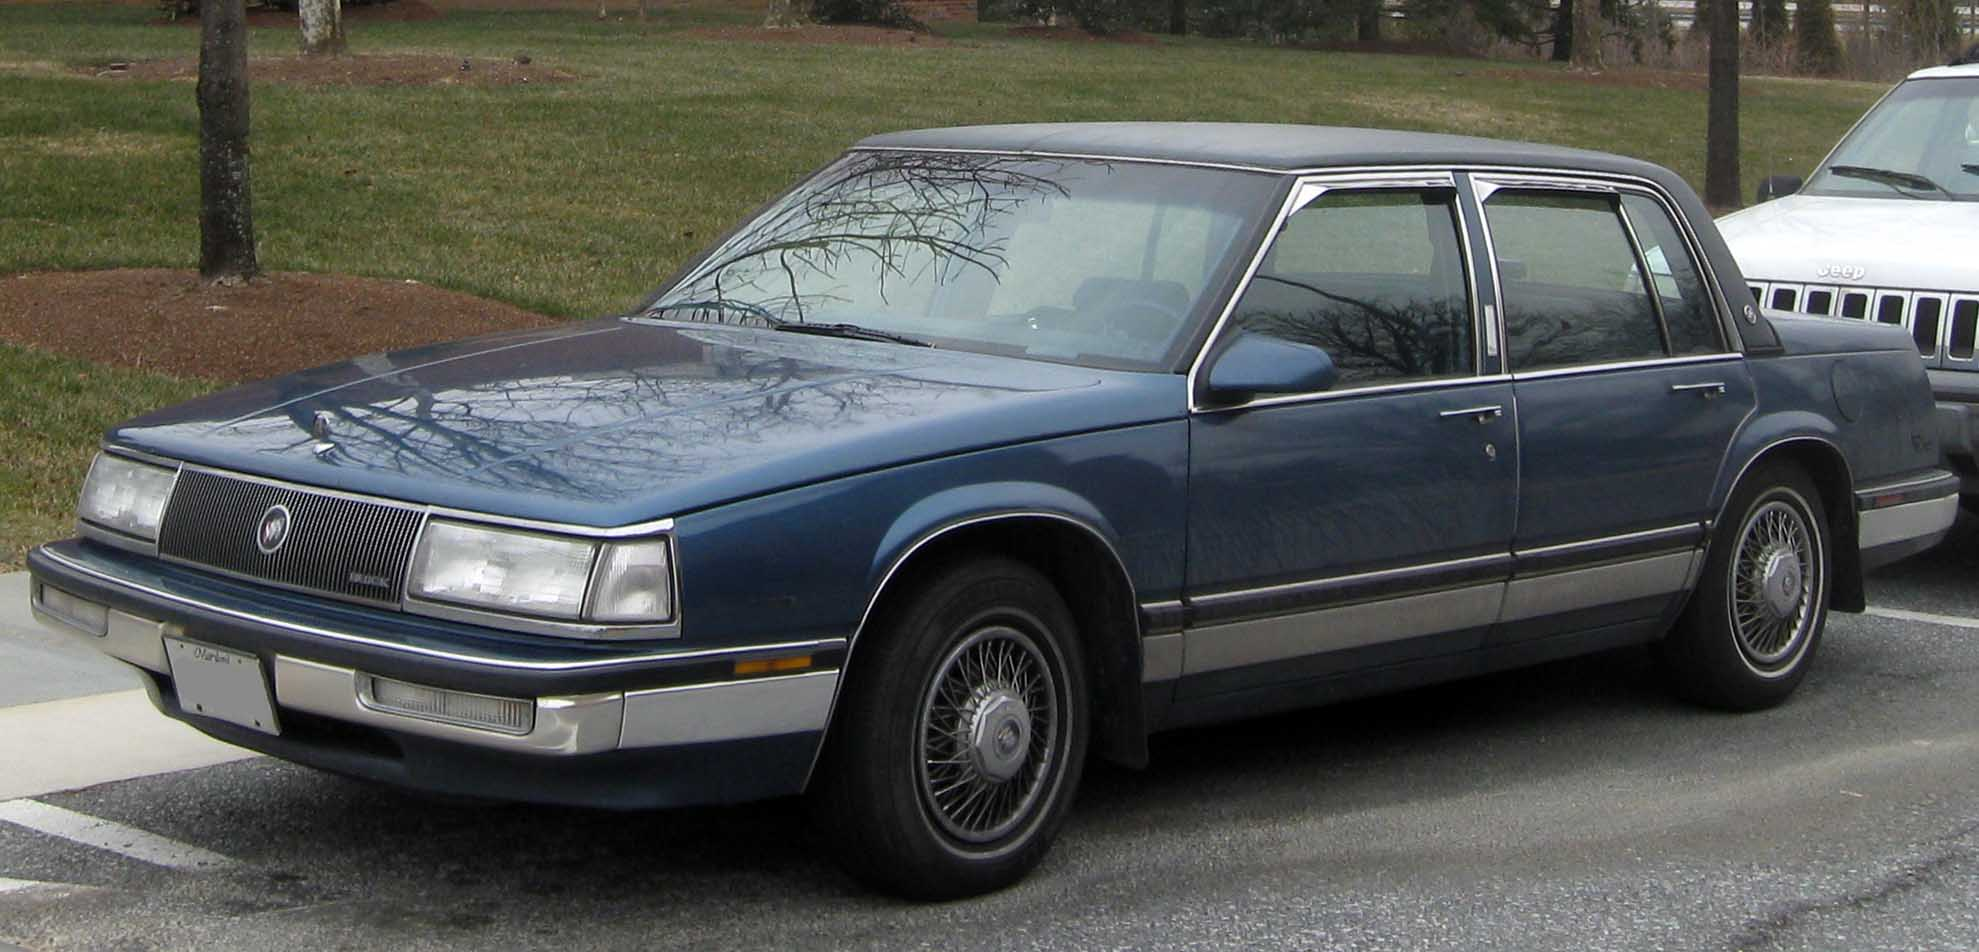 Buick Electra 1990 #16